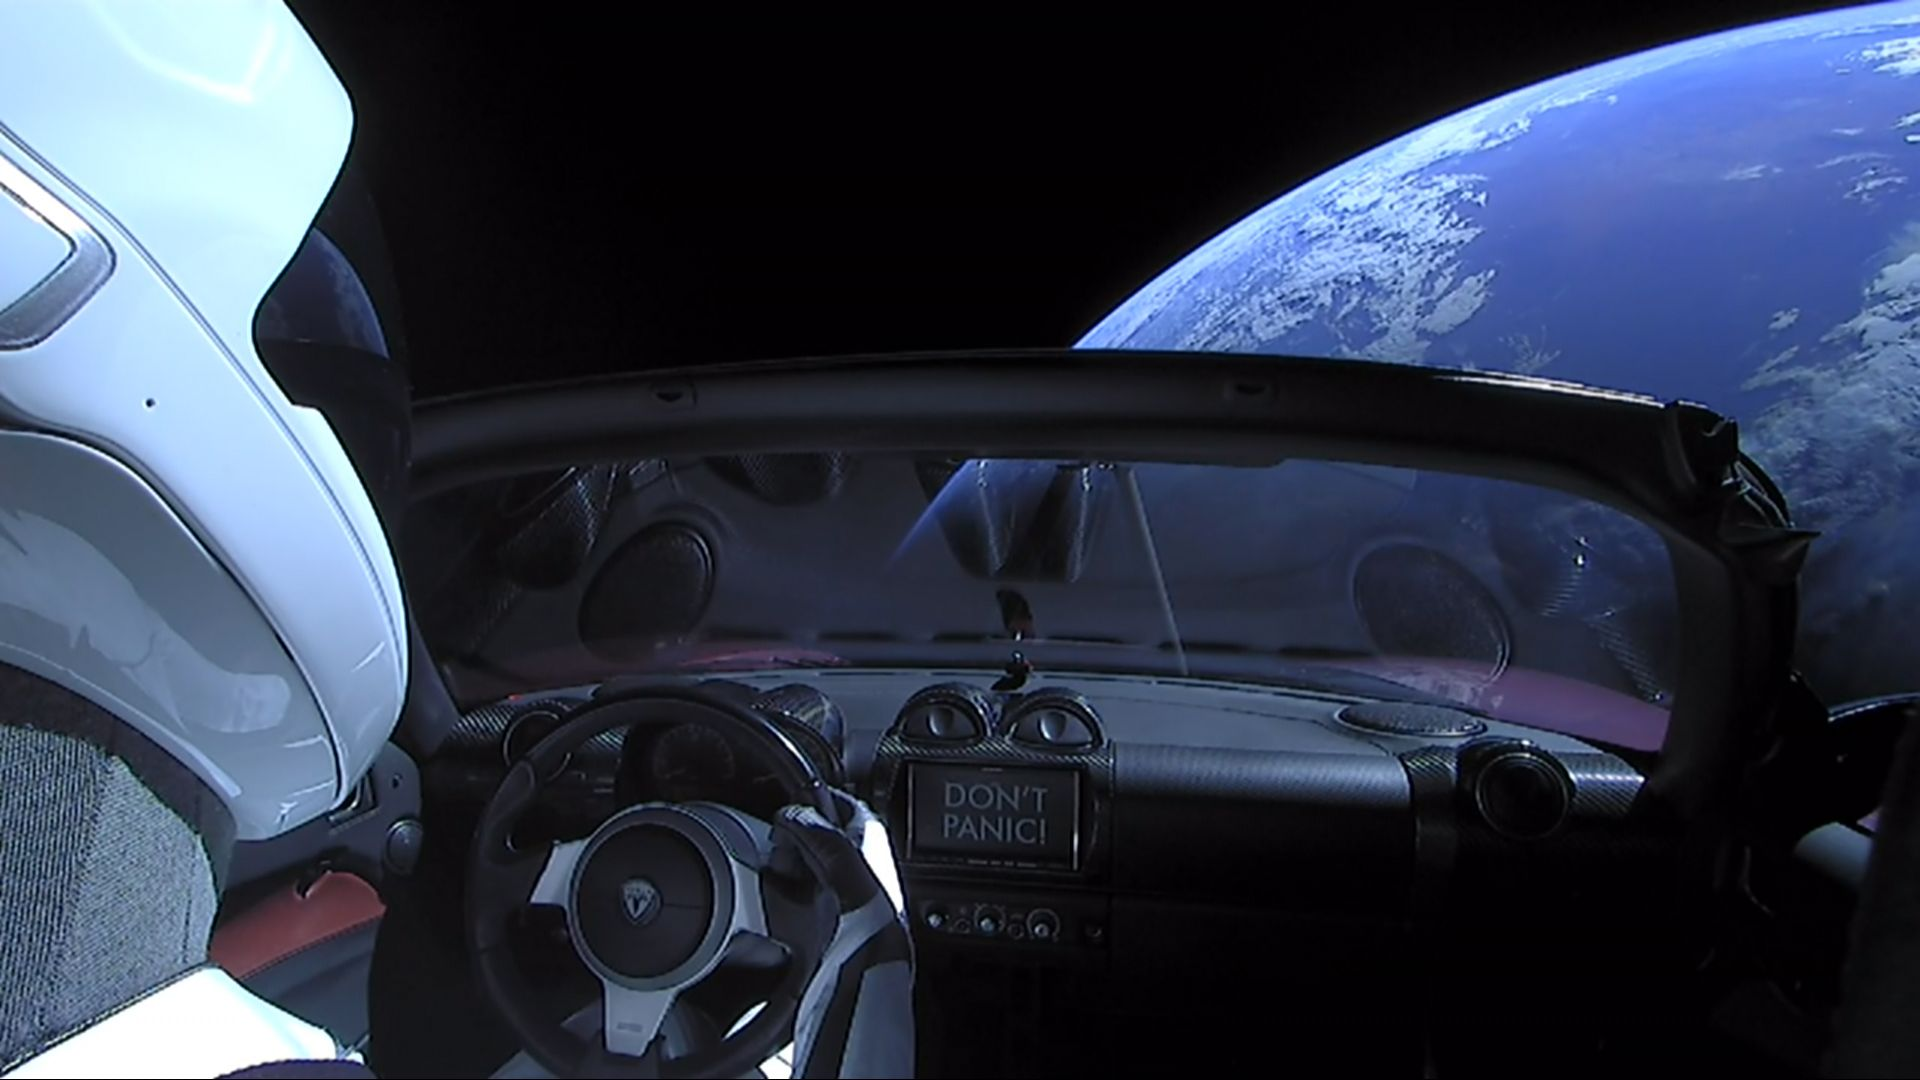 SpaceX Falcon Heavy: Elon Musk's Tesla Roadster Is on a